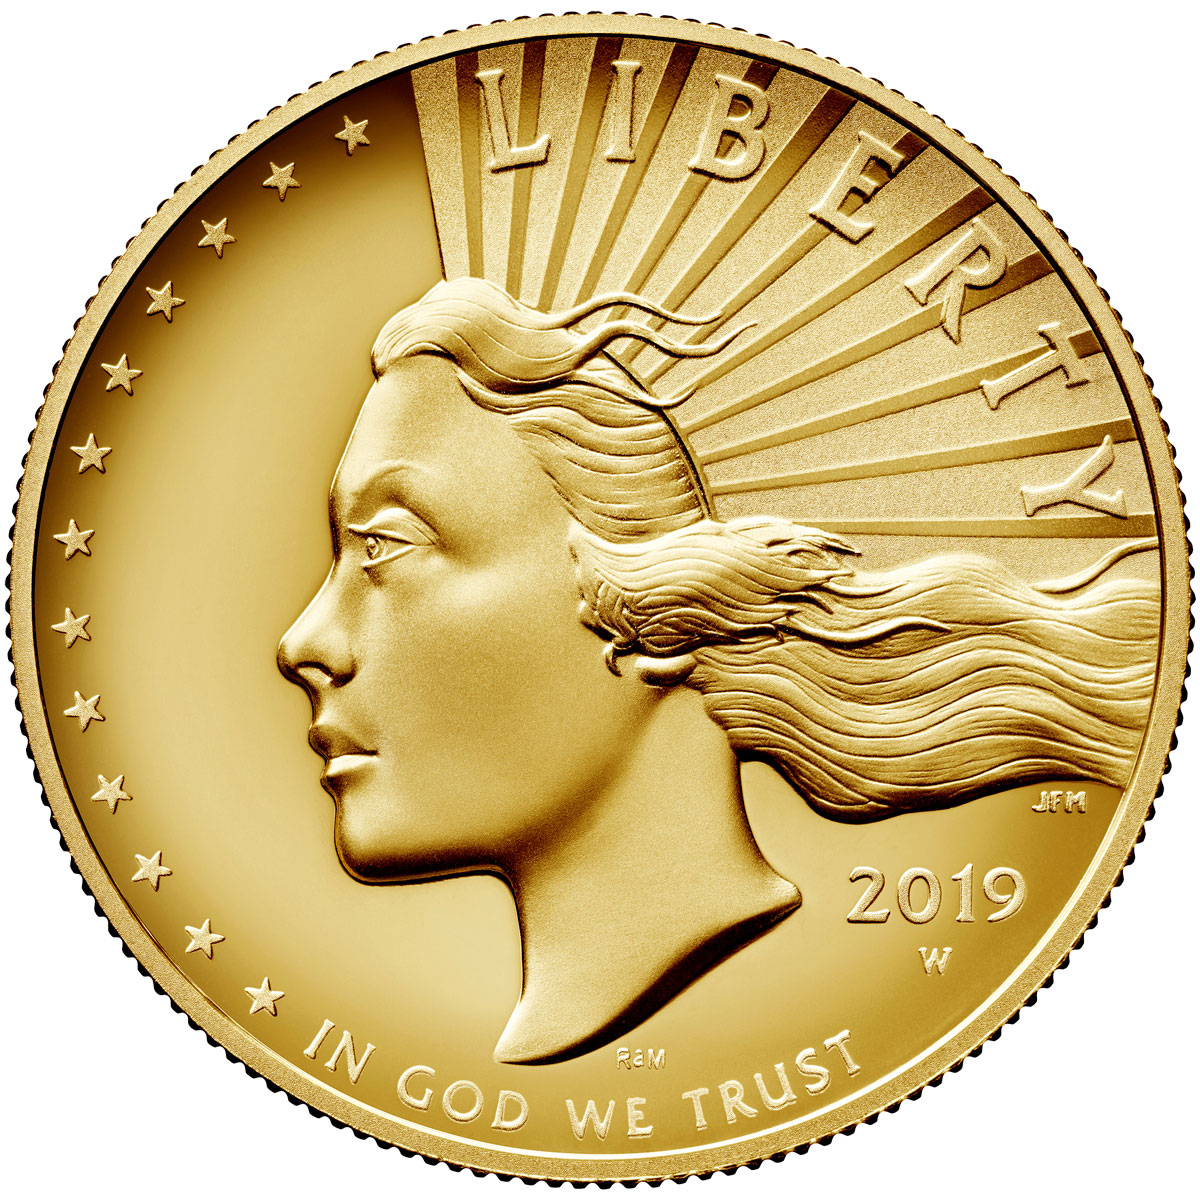 2019-W American Liberty Enhanced Finish High Relief $100 1 oz. Gold Specimen Coin OGP